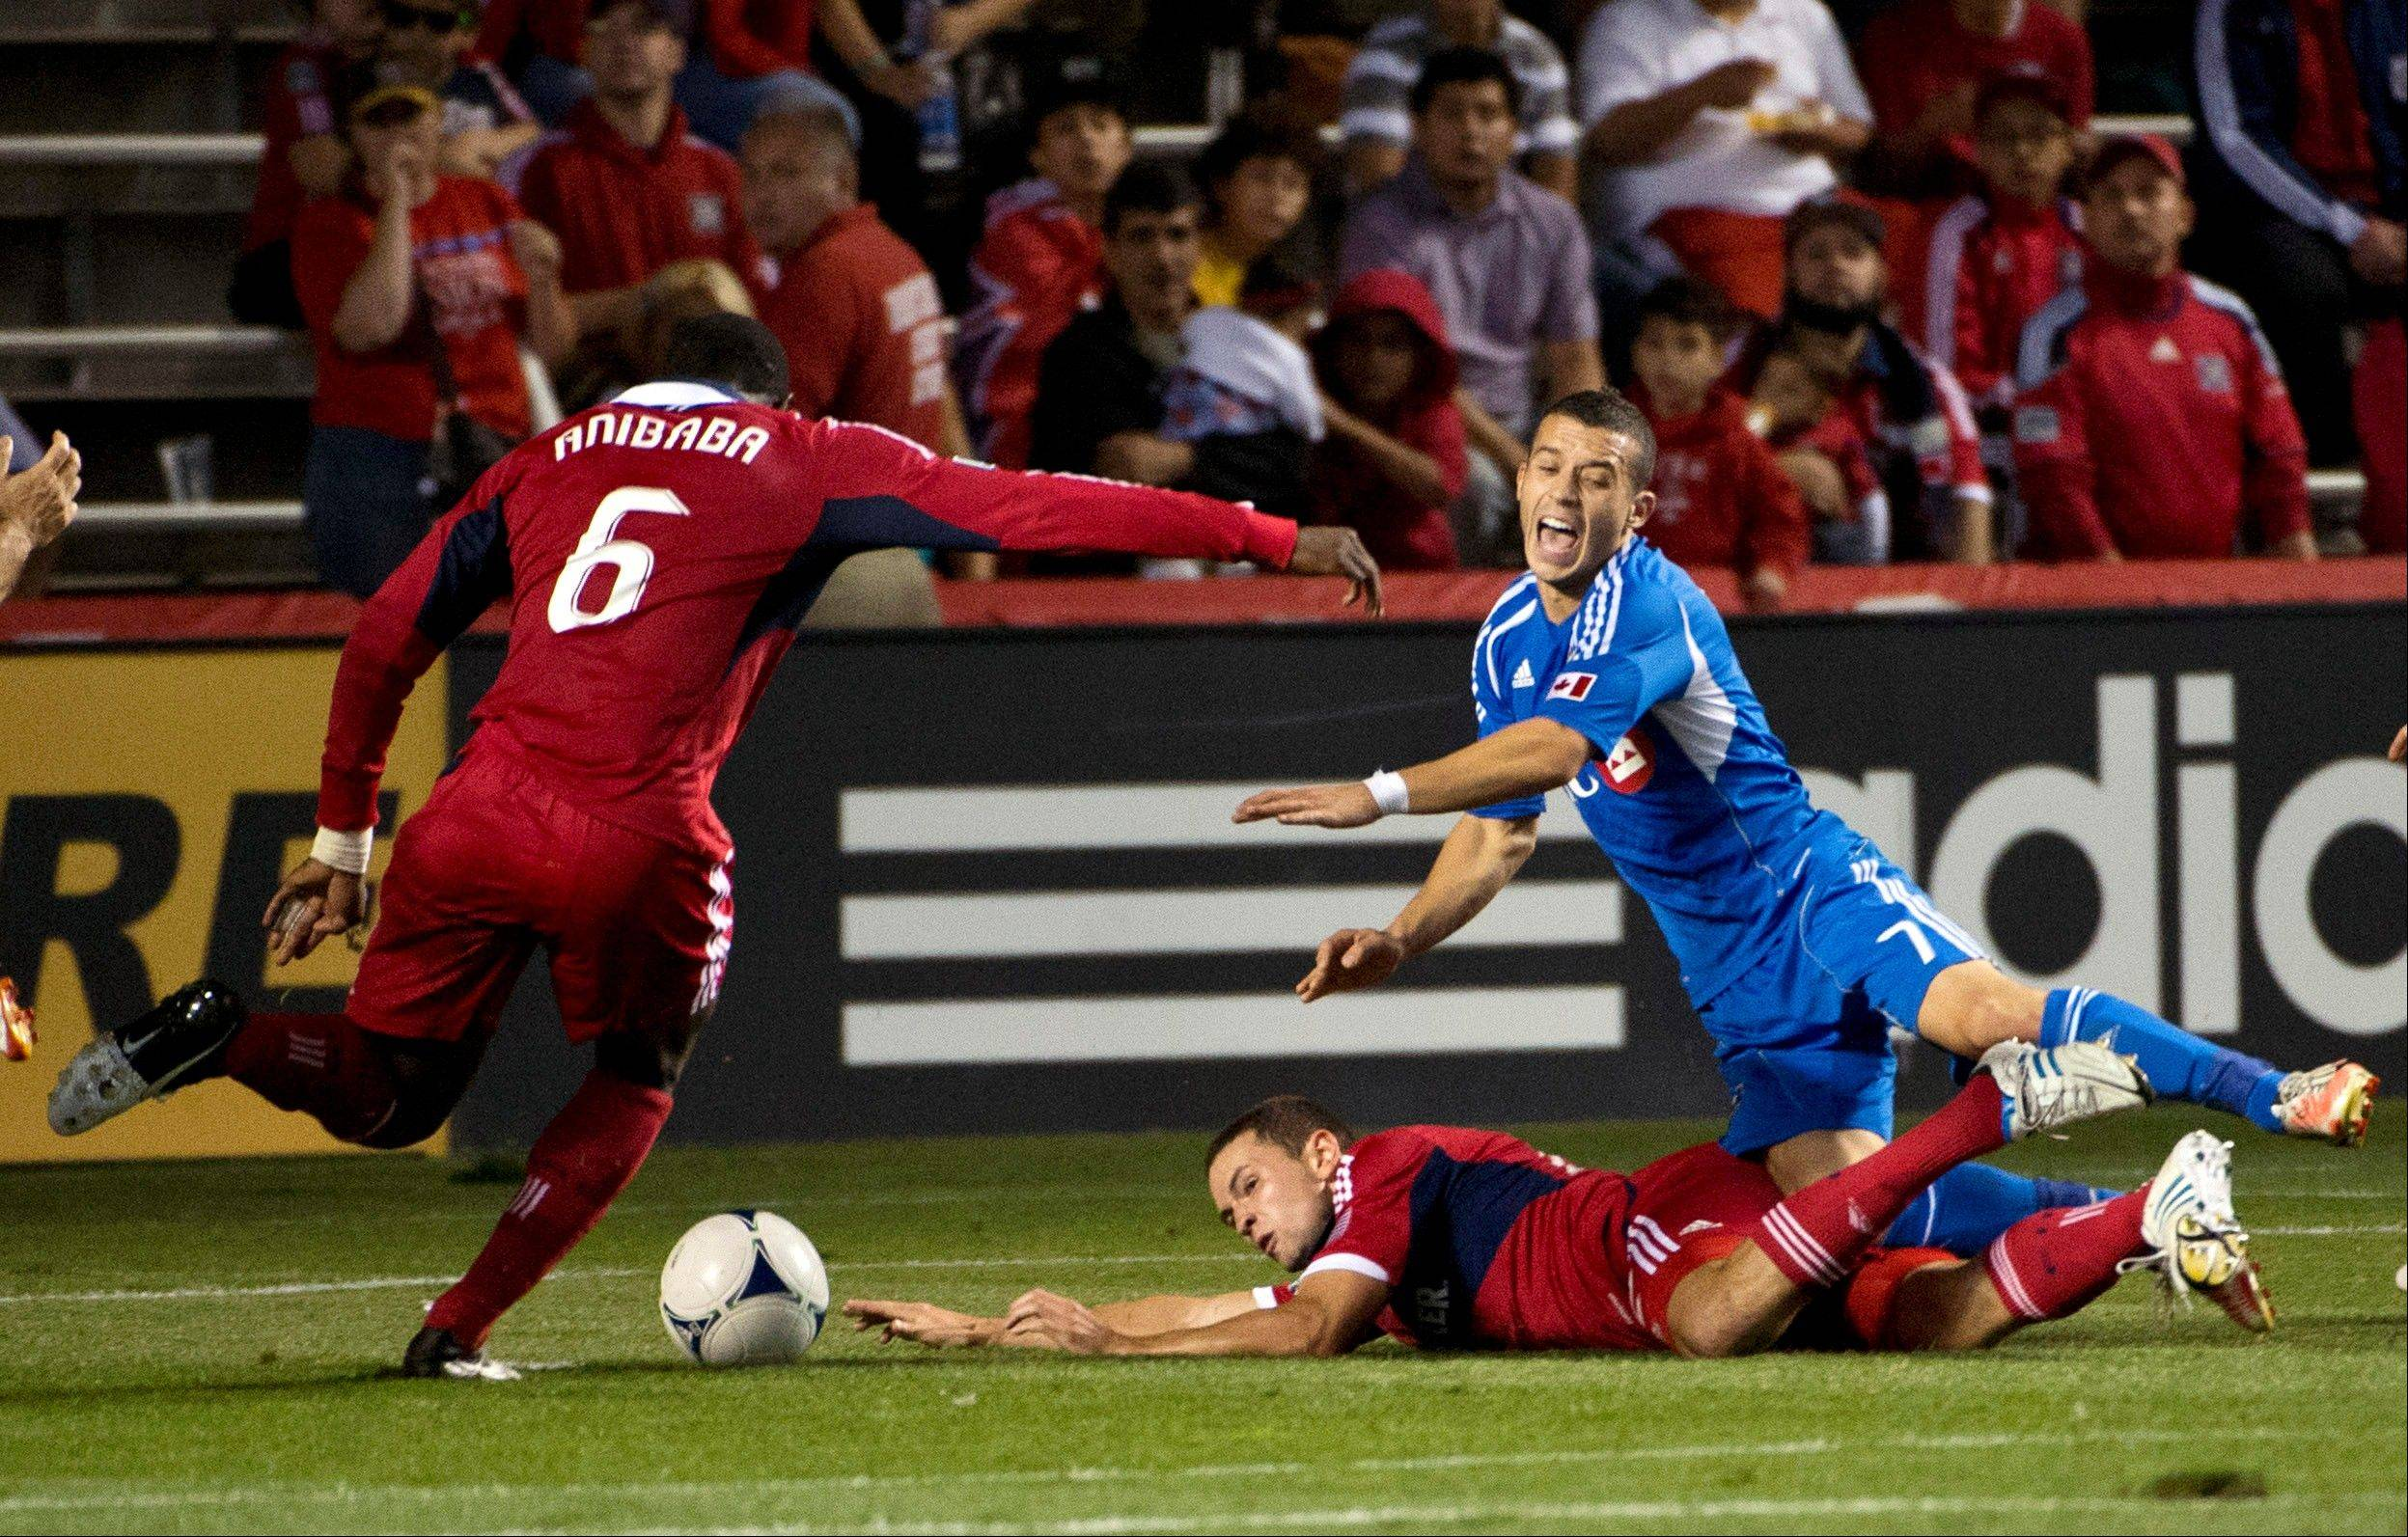 Montreal Impact midfielder Felipe Martins, right, is tripped by Chicago Fire defender Austin Berry, center, as defender Jalil Anibaba goes for the ball Saturday in Bridgeview.